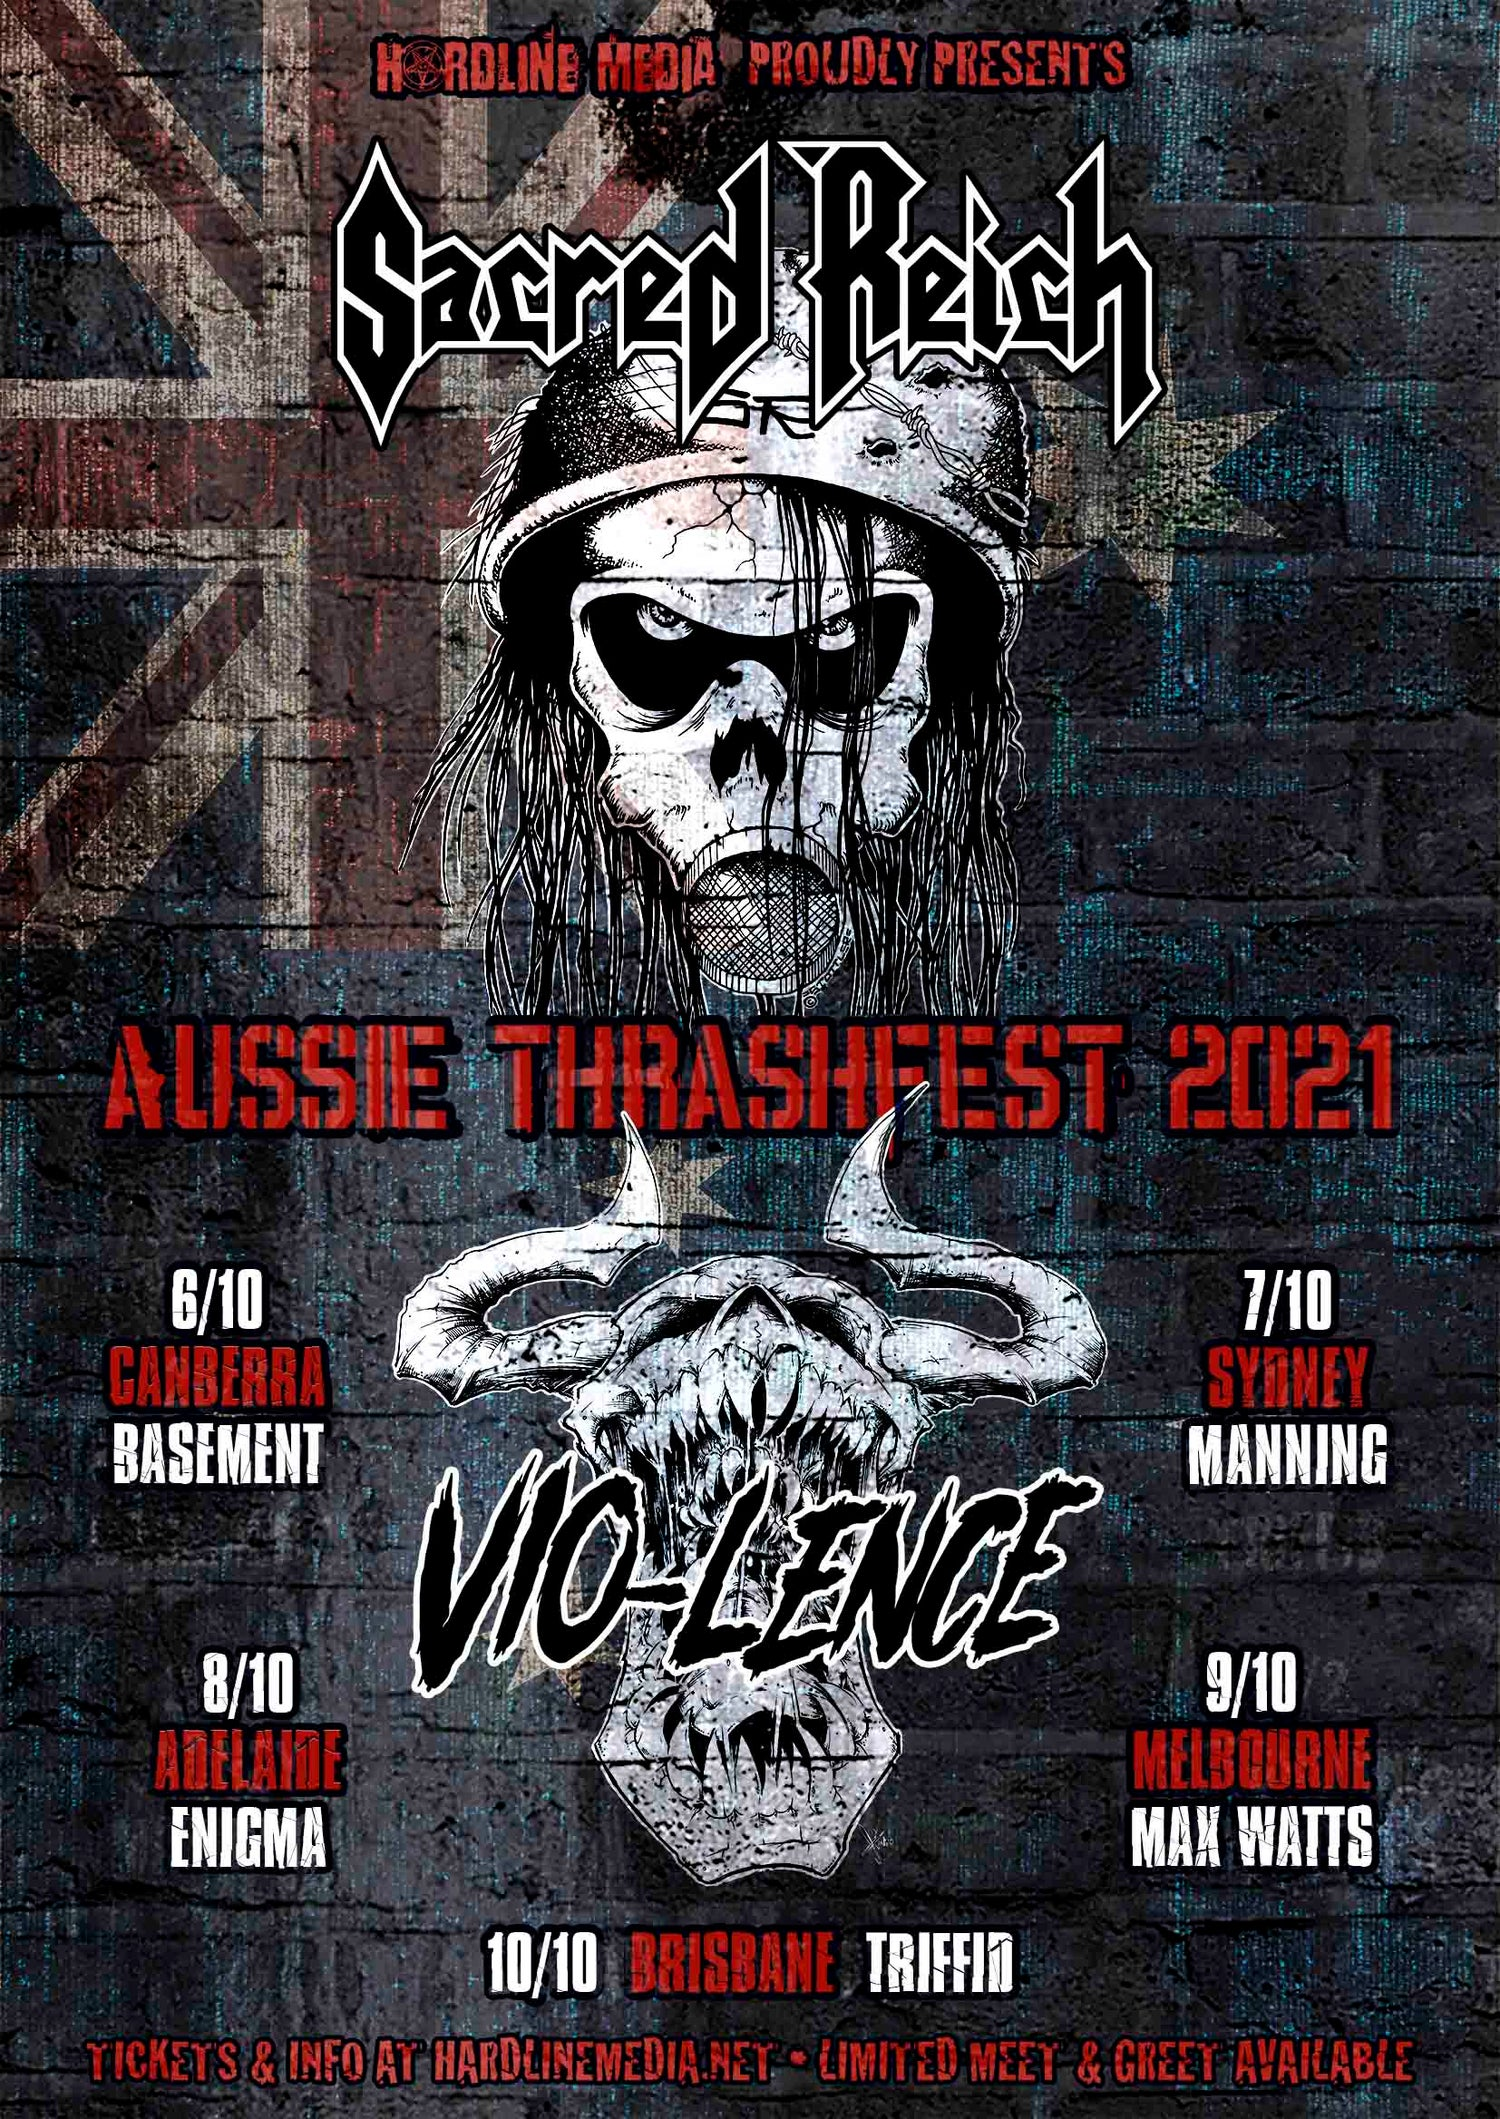 Image of GO TO OZTIX.COM.AU!!! GA TICKET - SACRED REICH + VIO-LENCE - CANBERRA, BASEMENT - WED 6 OCT 2021